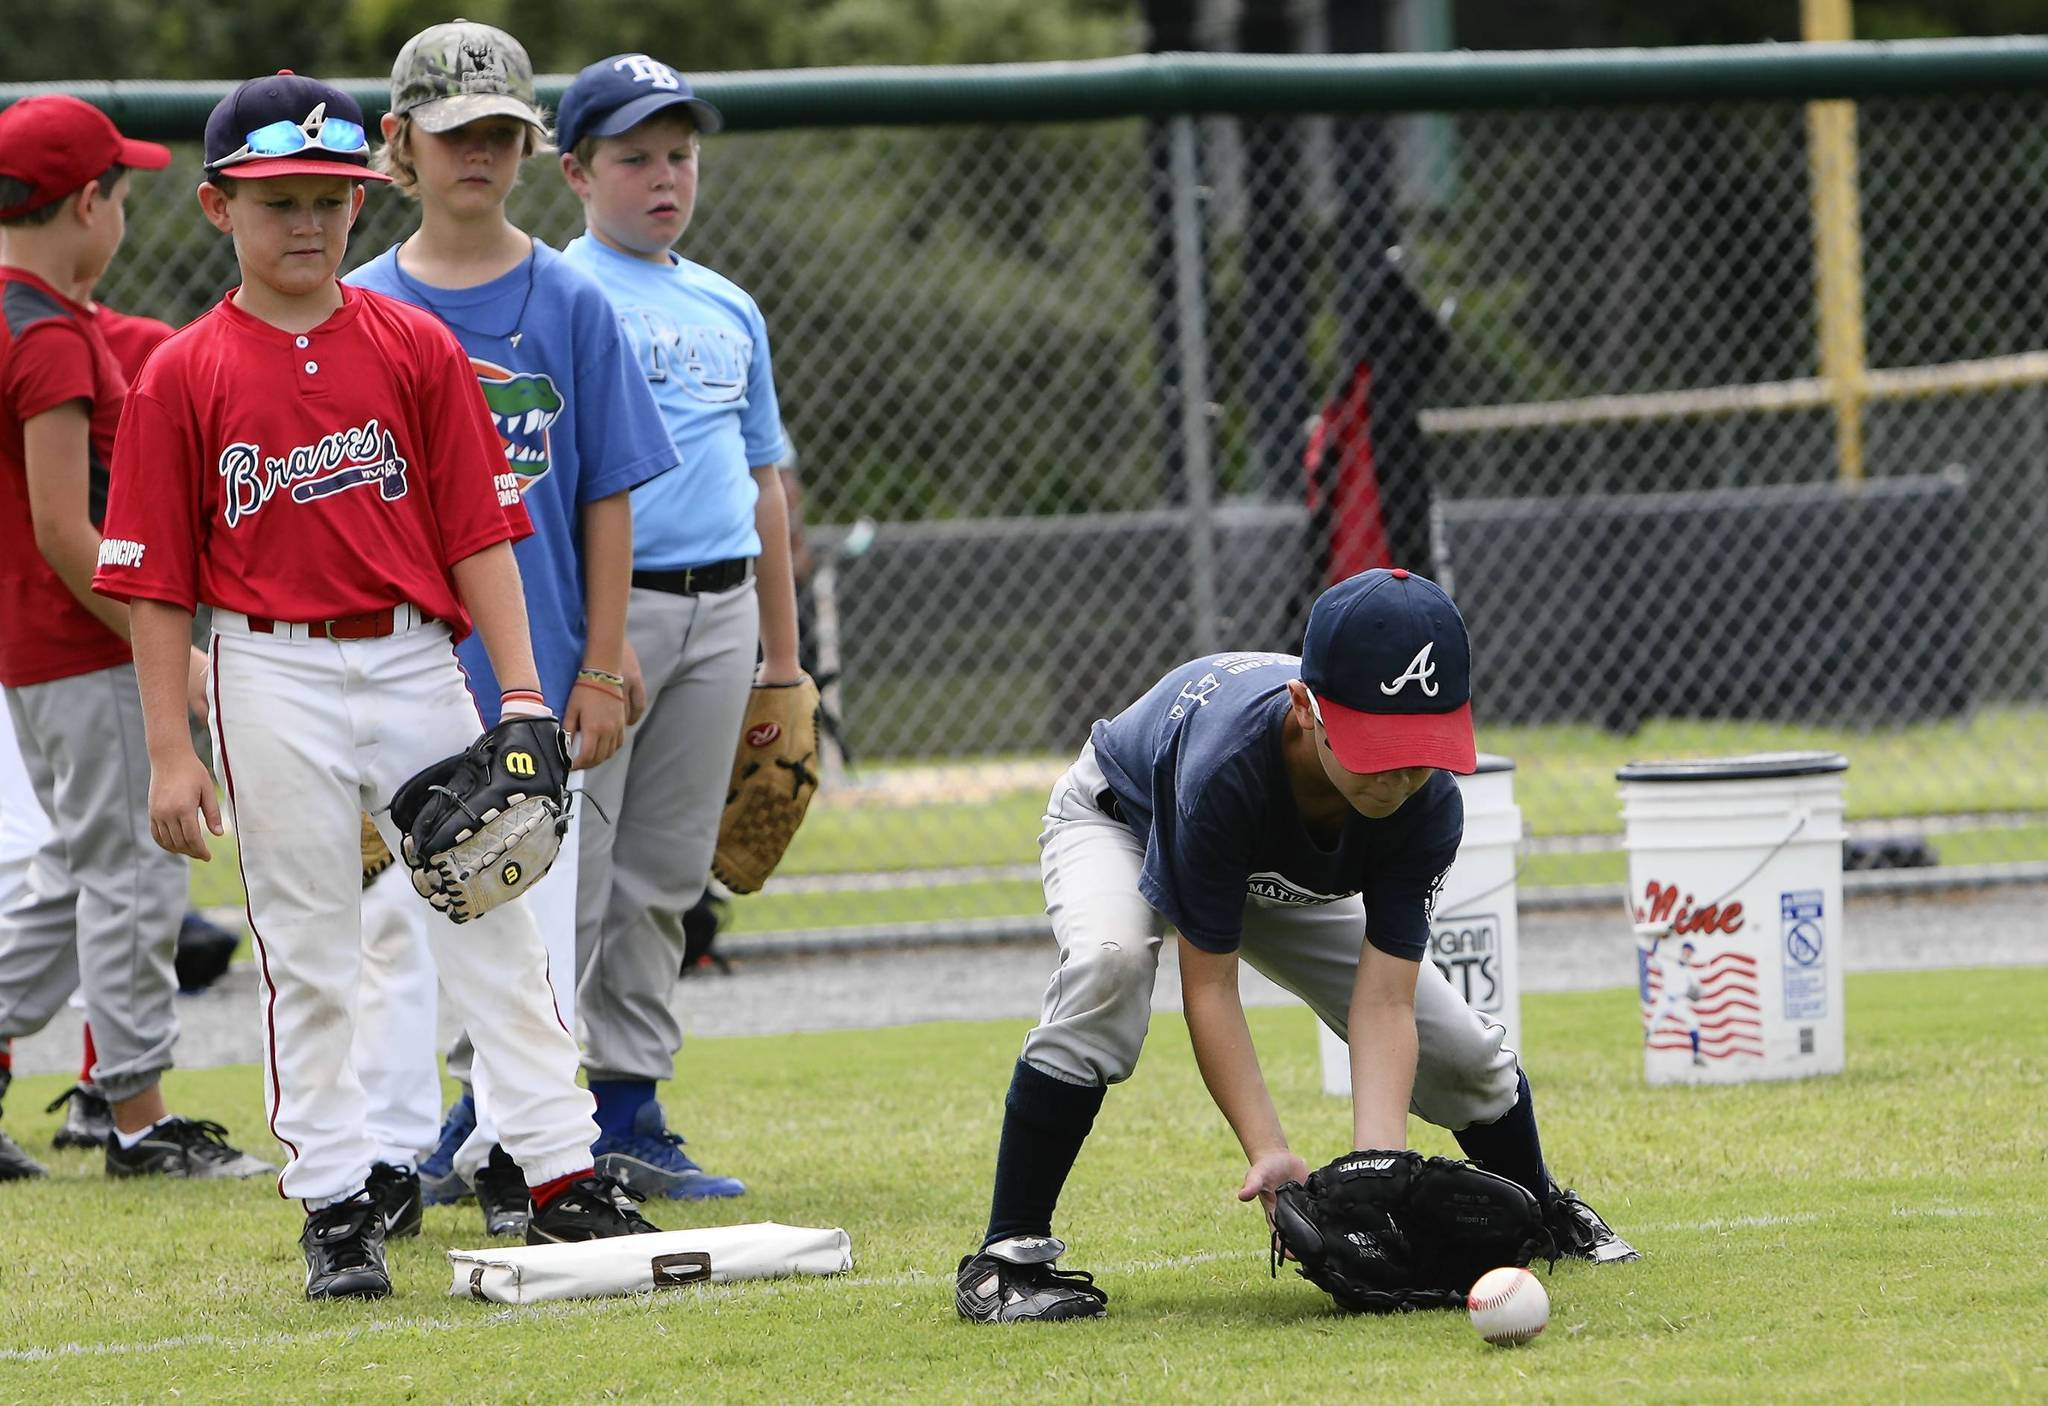 Lake-Sumter Community College baseball coach Rich Billings, teaches 8-12 year olds  on Monday, June 11, 2012. During the Mike Matulia All-Star baseball school summer session at the LSCC athletic campus in Leesburg. (Tom Benitez/Orlando Sentinel